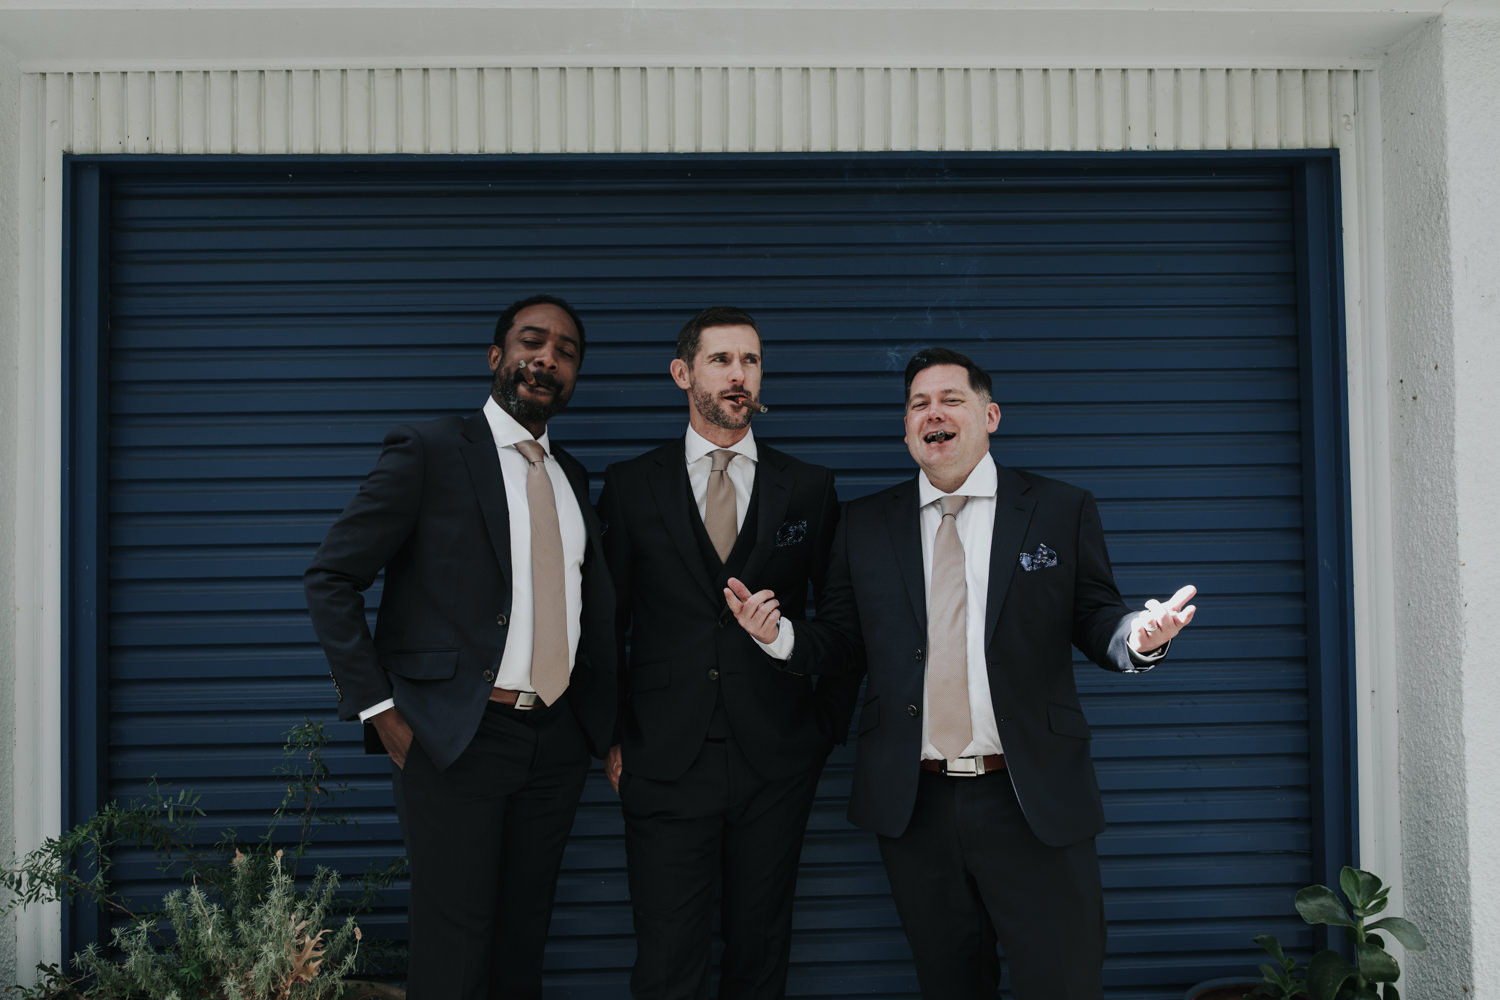 Cigars with groomsmen, Canberra Wedding Photographer Jenny Wu Straight No Chaser